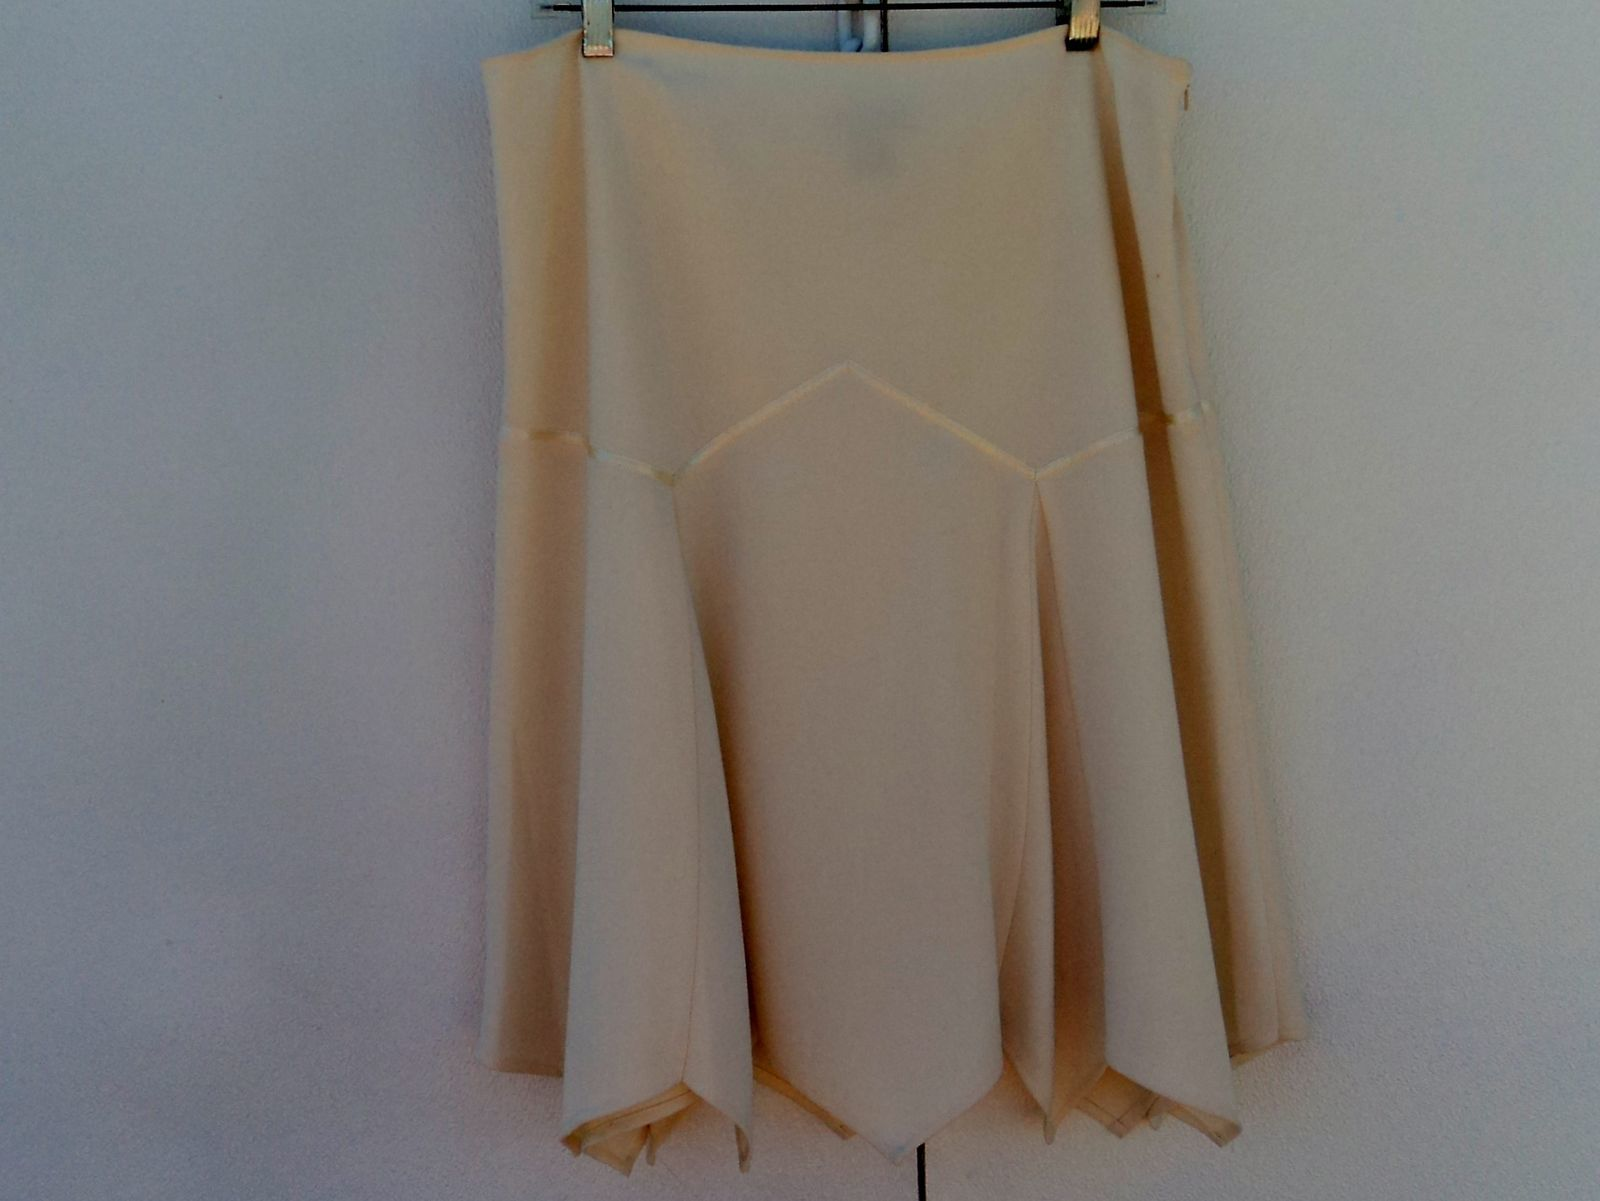 Mac & Jac Asymmetrical Skirt Lined Cream Polyester Rayon Female 12 Solid